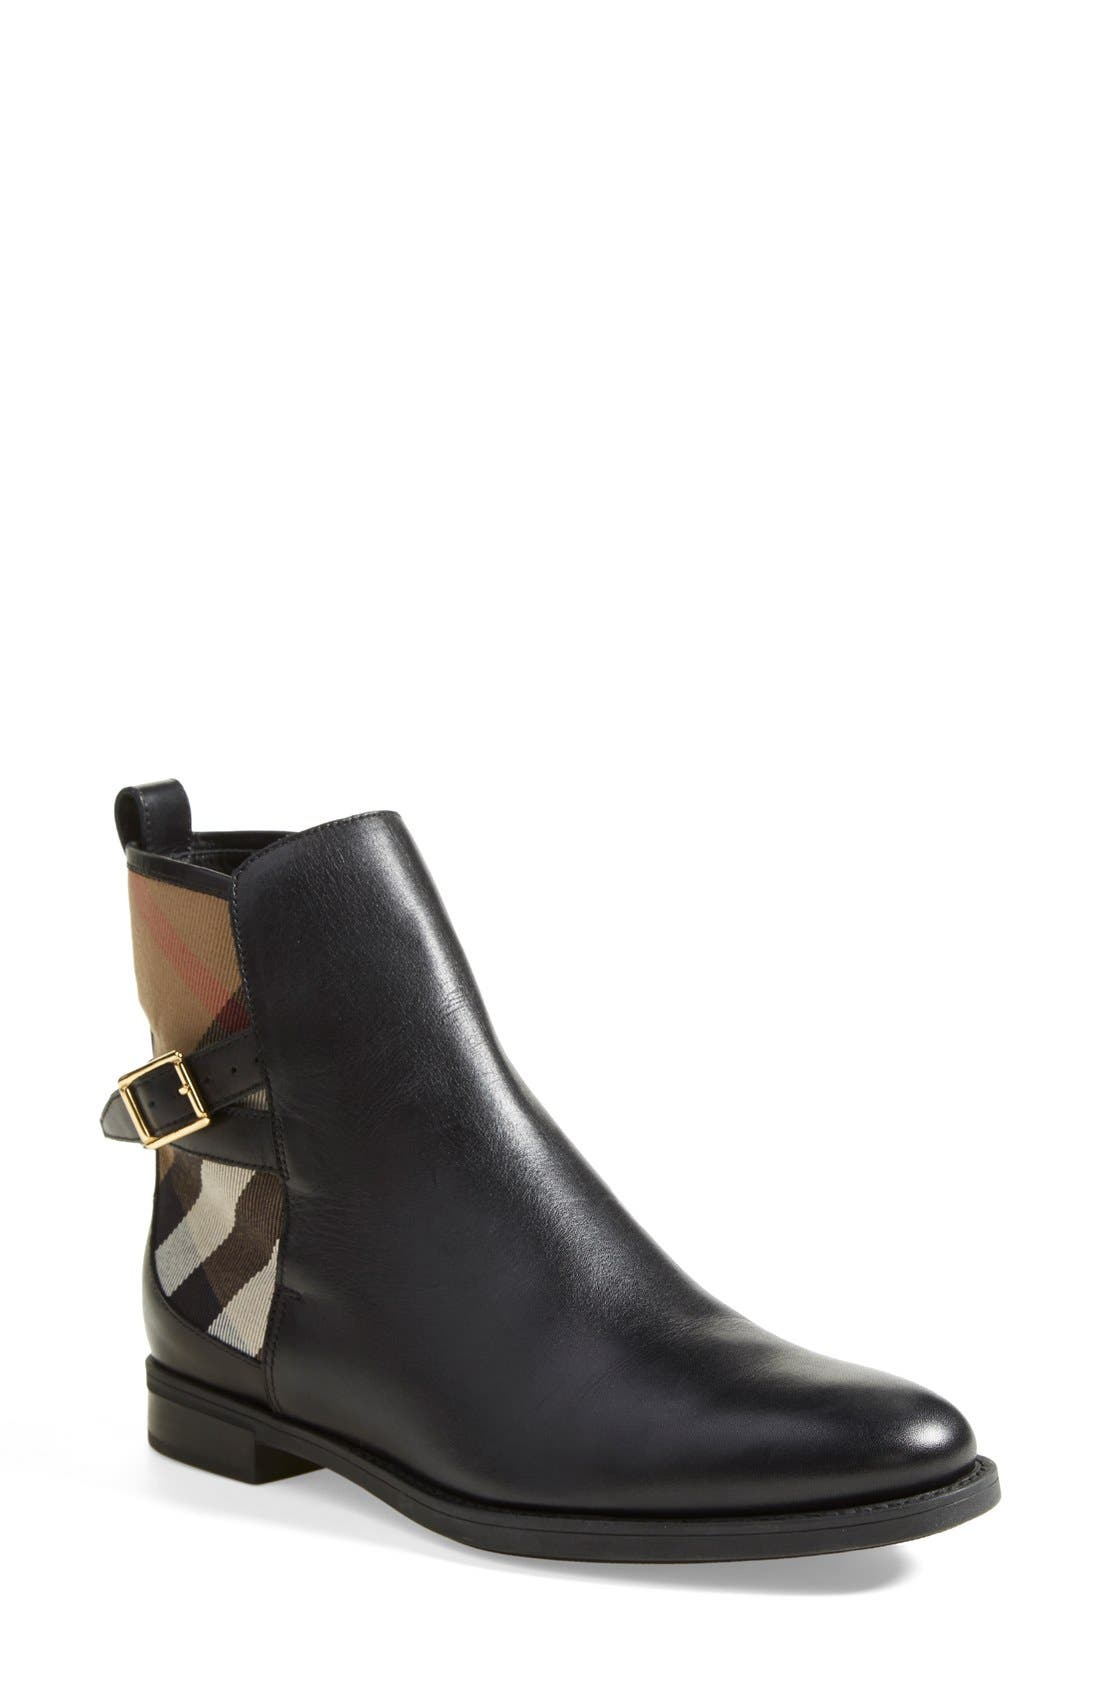 Alternate Image 1 Selected - Burberry 'Richardson' Leather Boot (Women)